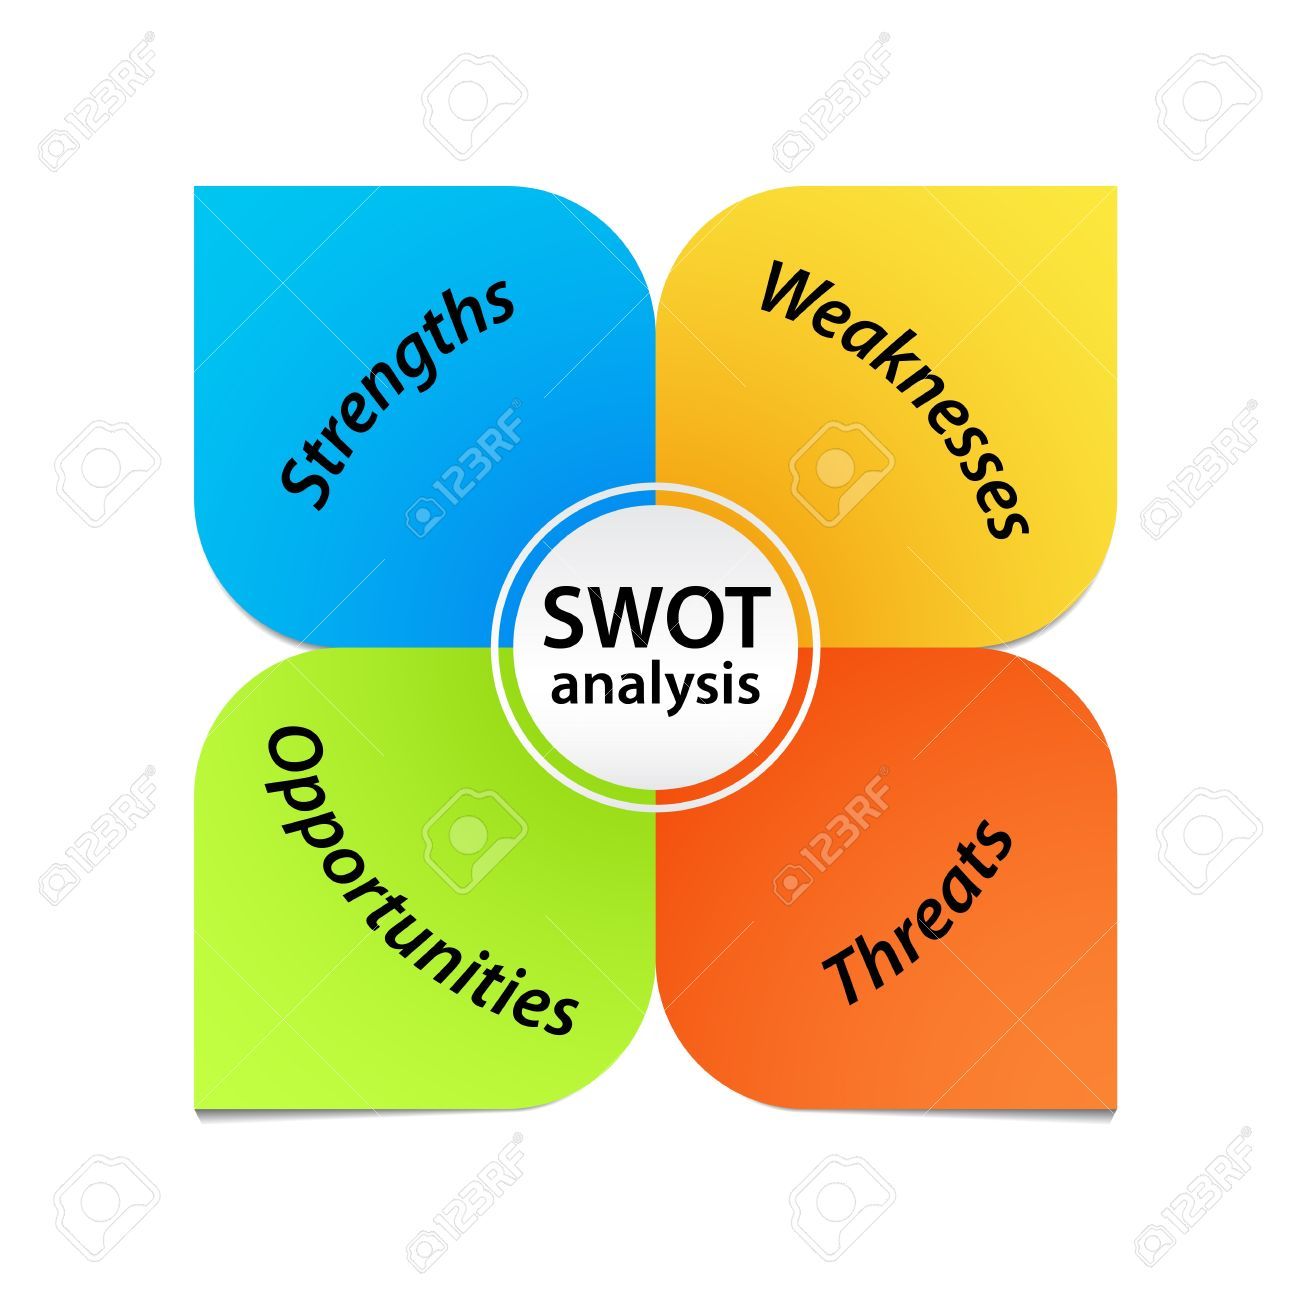 Swot analysis diagram royalty free cliparts vetores e ilustraes imagens swot analysis diagram ccuart Image collections